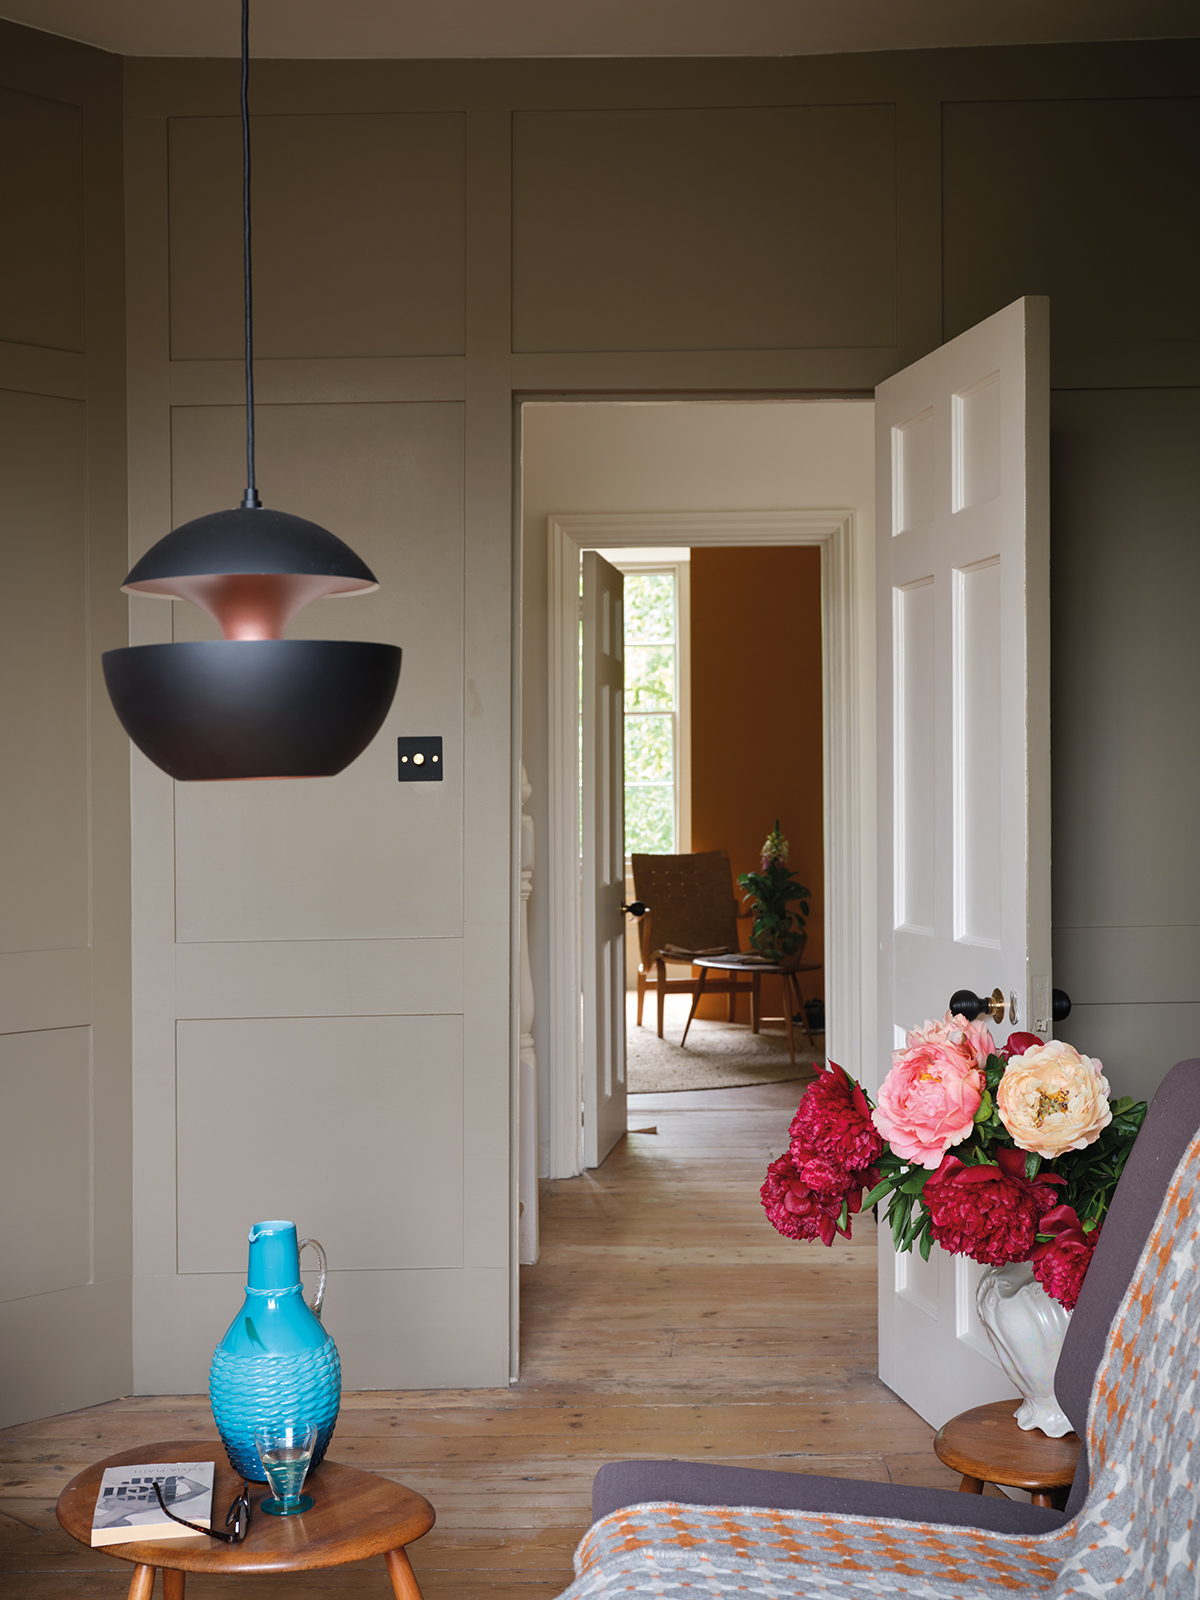 Contemporary lighting and accessories sit happily with the classic panelled wall is painted in Broccoli Brown, one of the new Farrow & Ball and Natural History Museum new colours. Sophie Robinson looks at the new paint collection here. #farrowandball #panelledwall #livingroom #sophierobinson